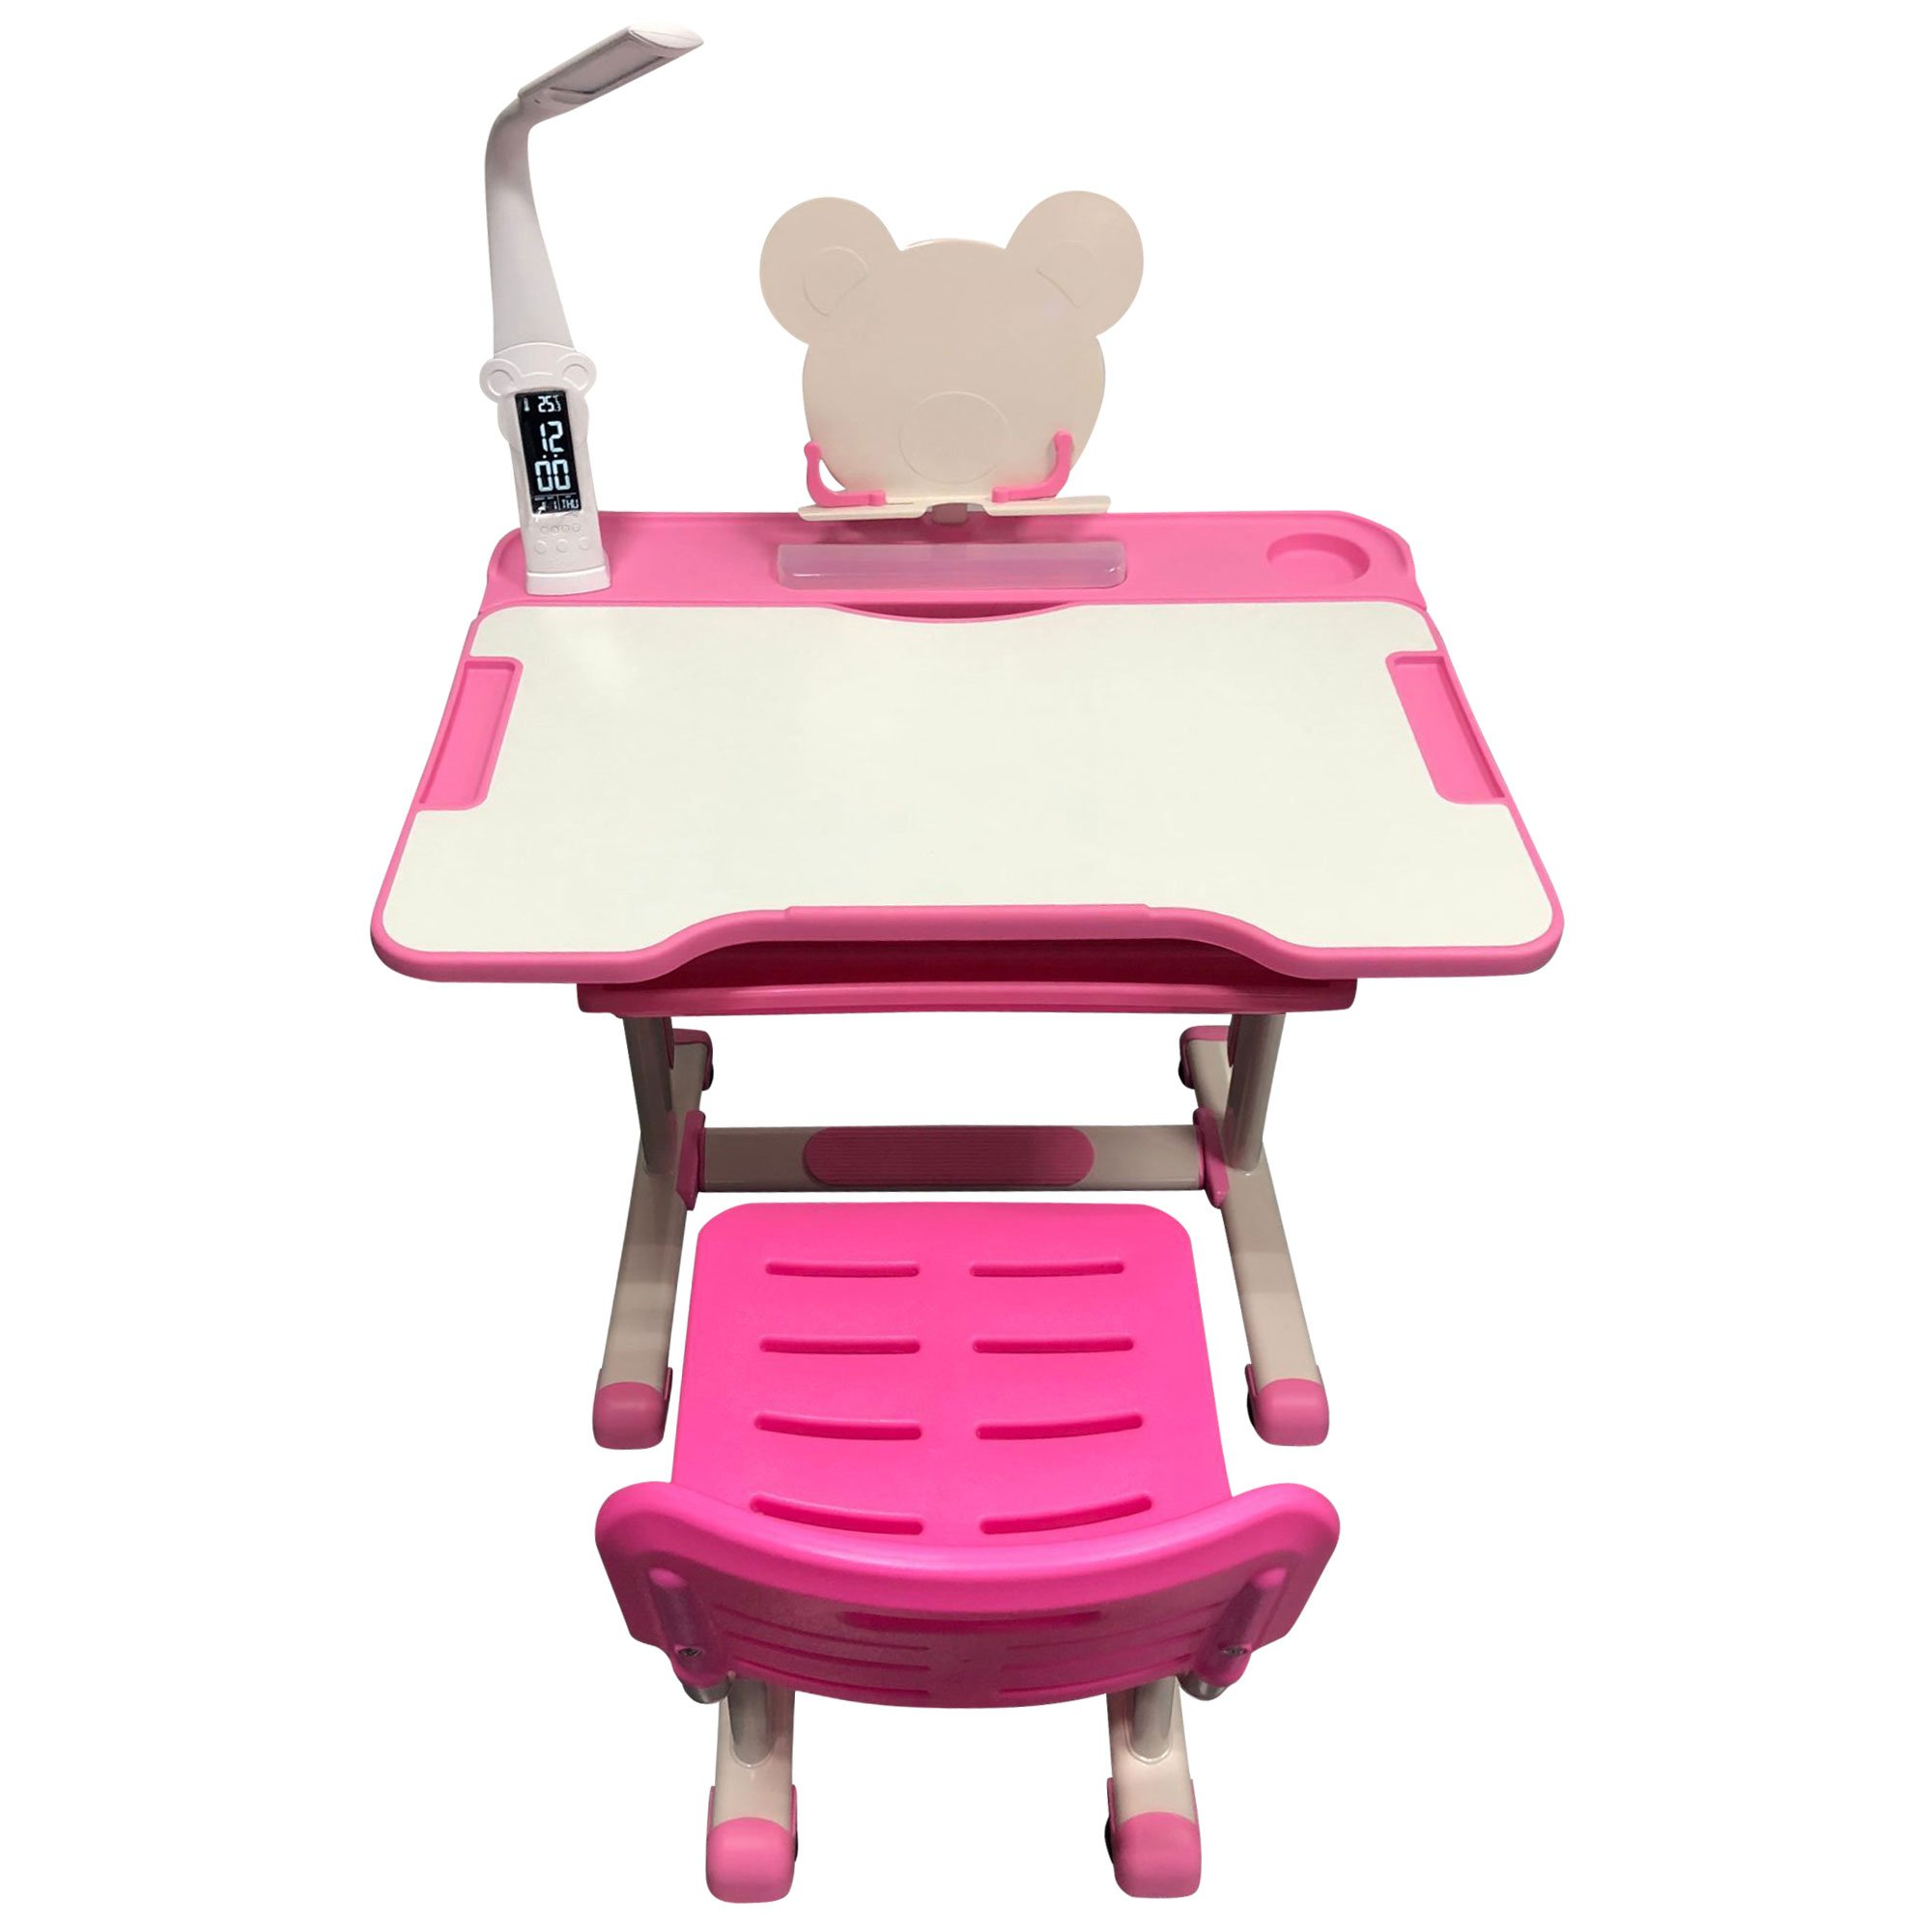 height-adjustable-desk-for-kids-study-table-pink-desk-for-girls-Sprite-Pink-2018-Model-02